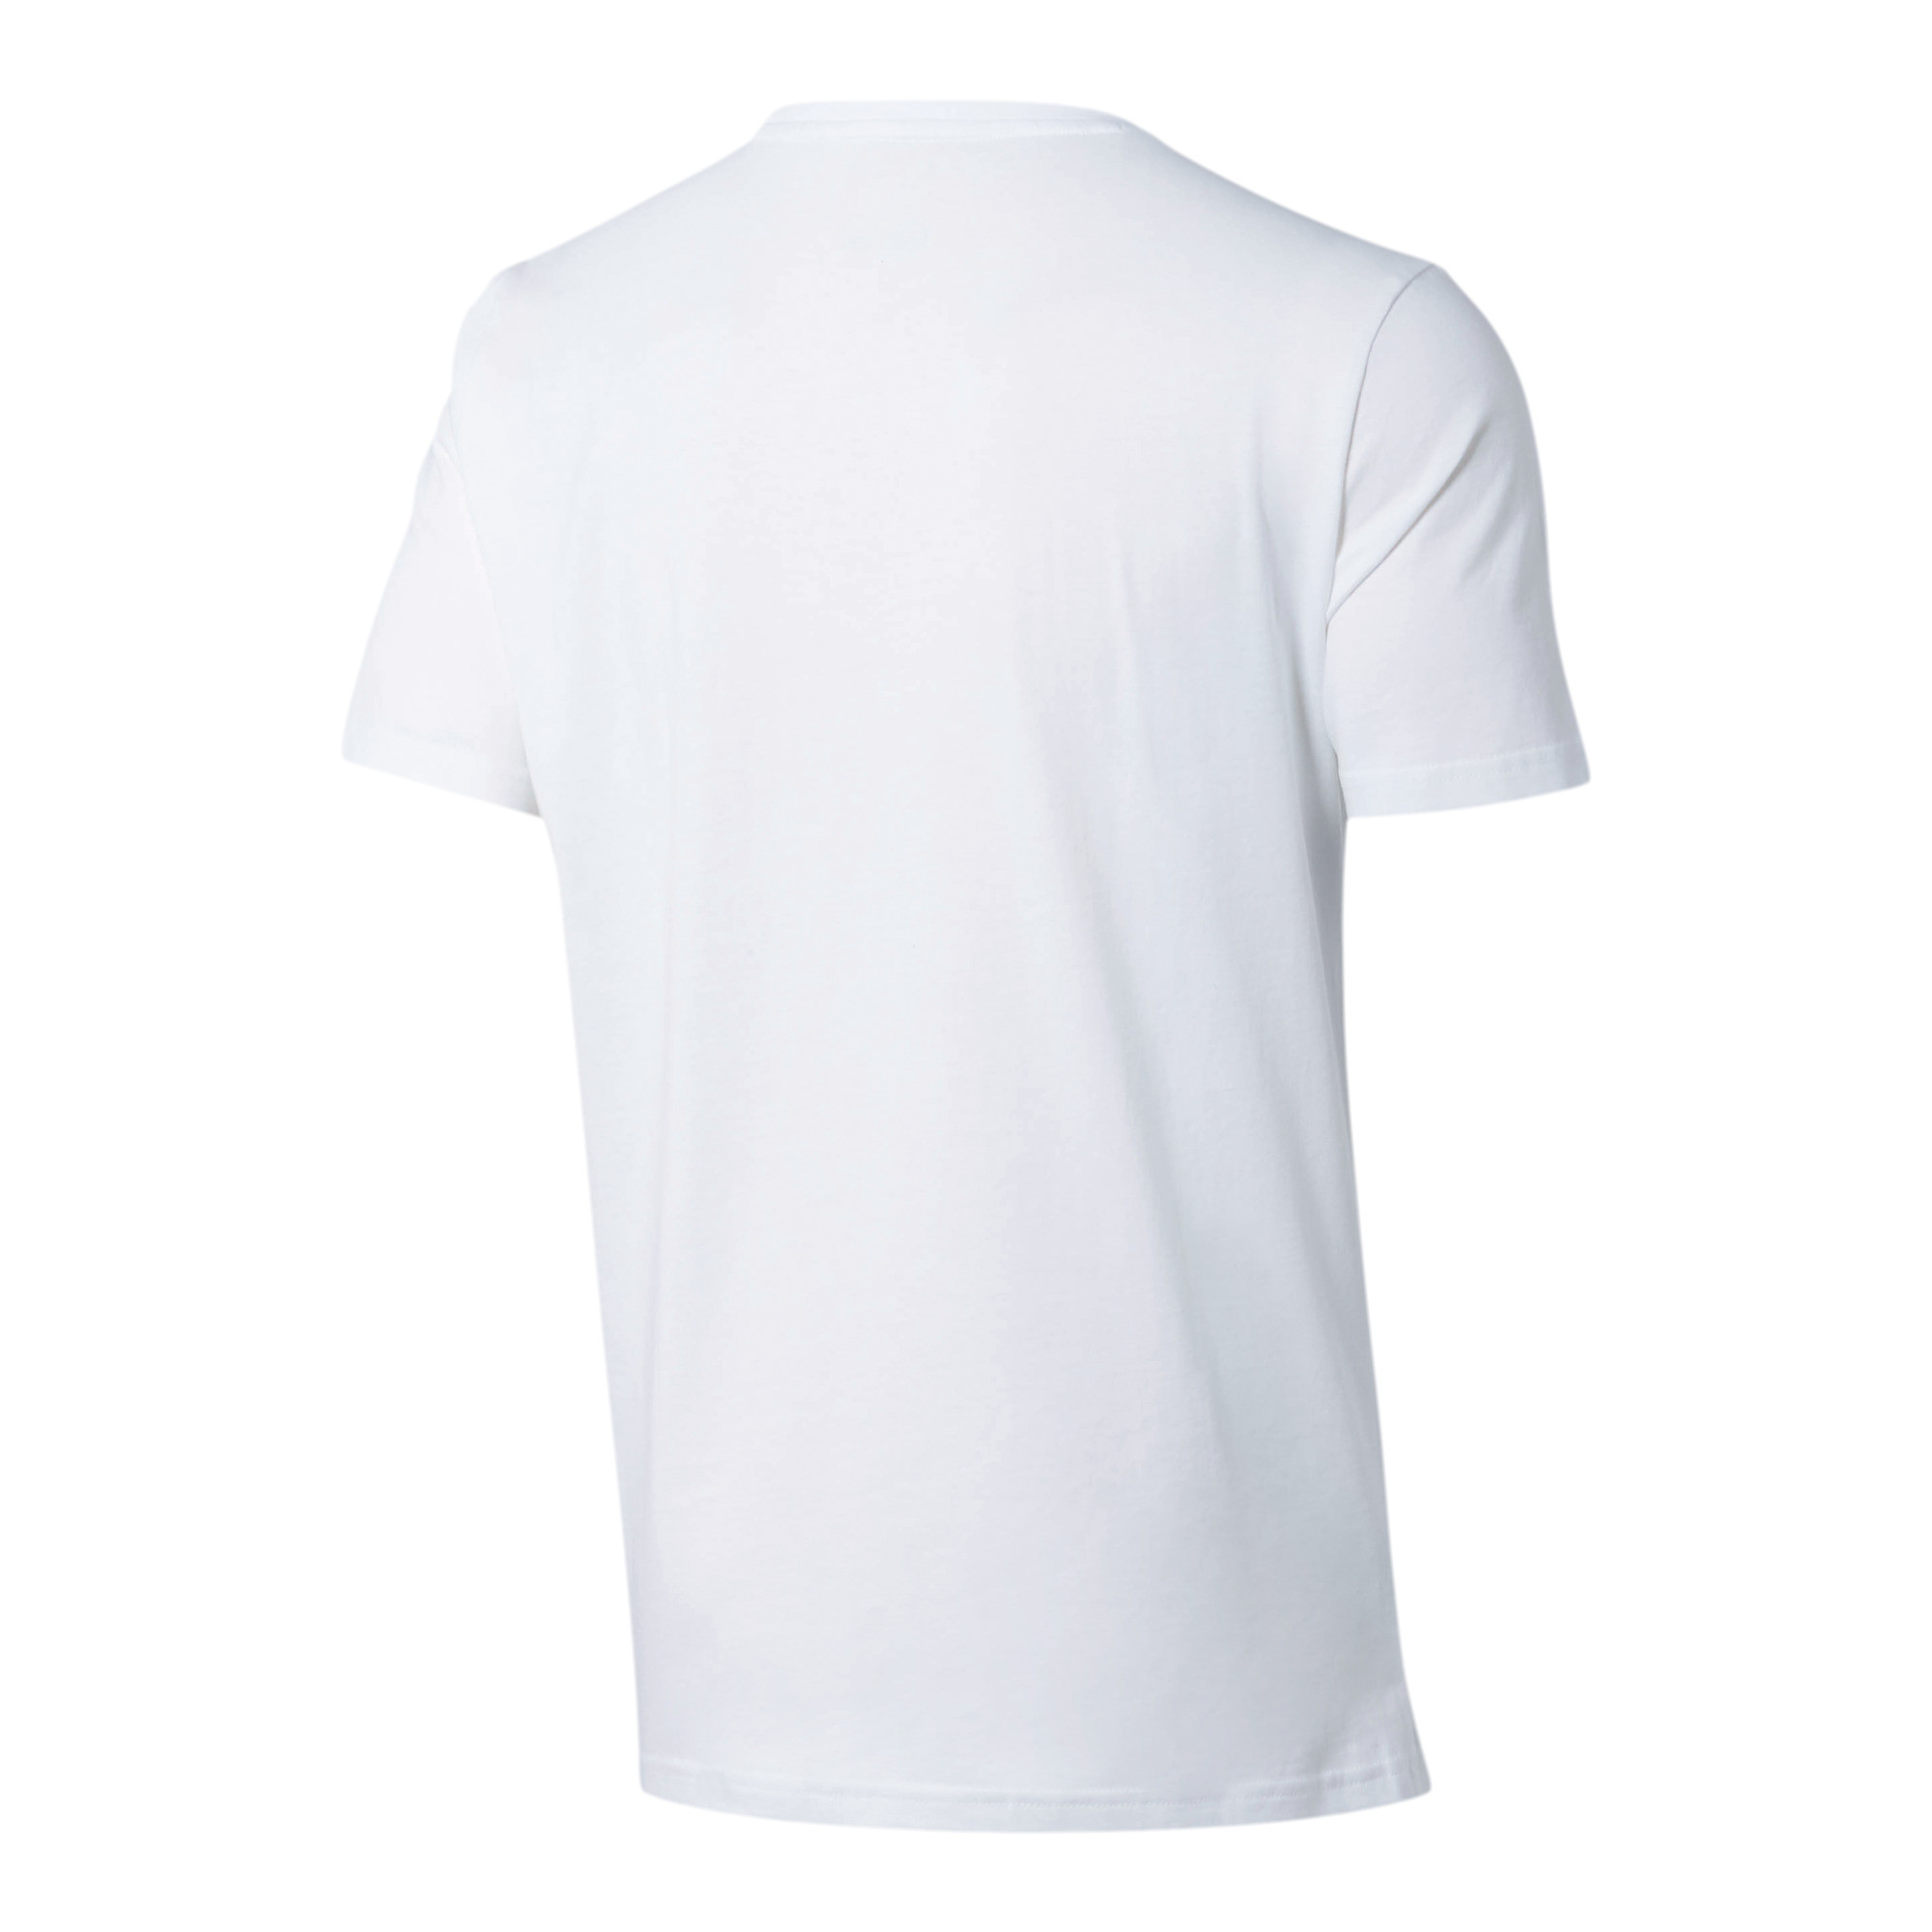 PUMA-Logo-AOP-Pack-Men-039-s-Graphic-Tee-Men-Tee-Basics thumbnail 8